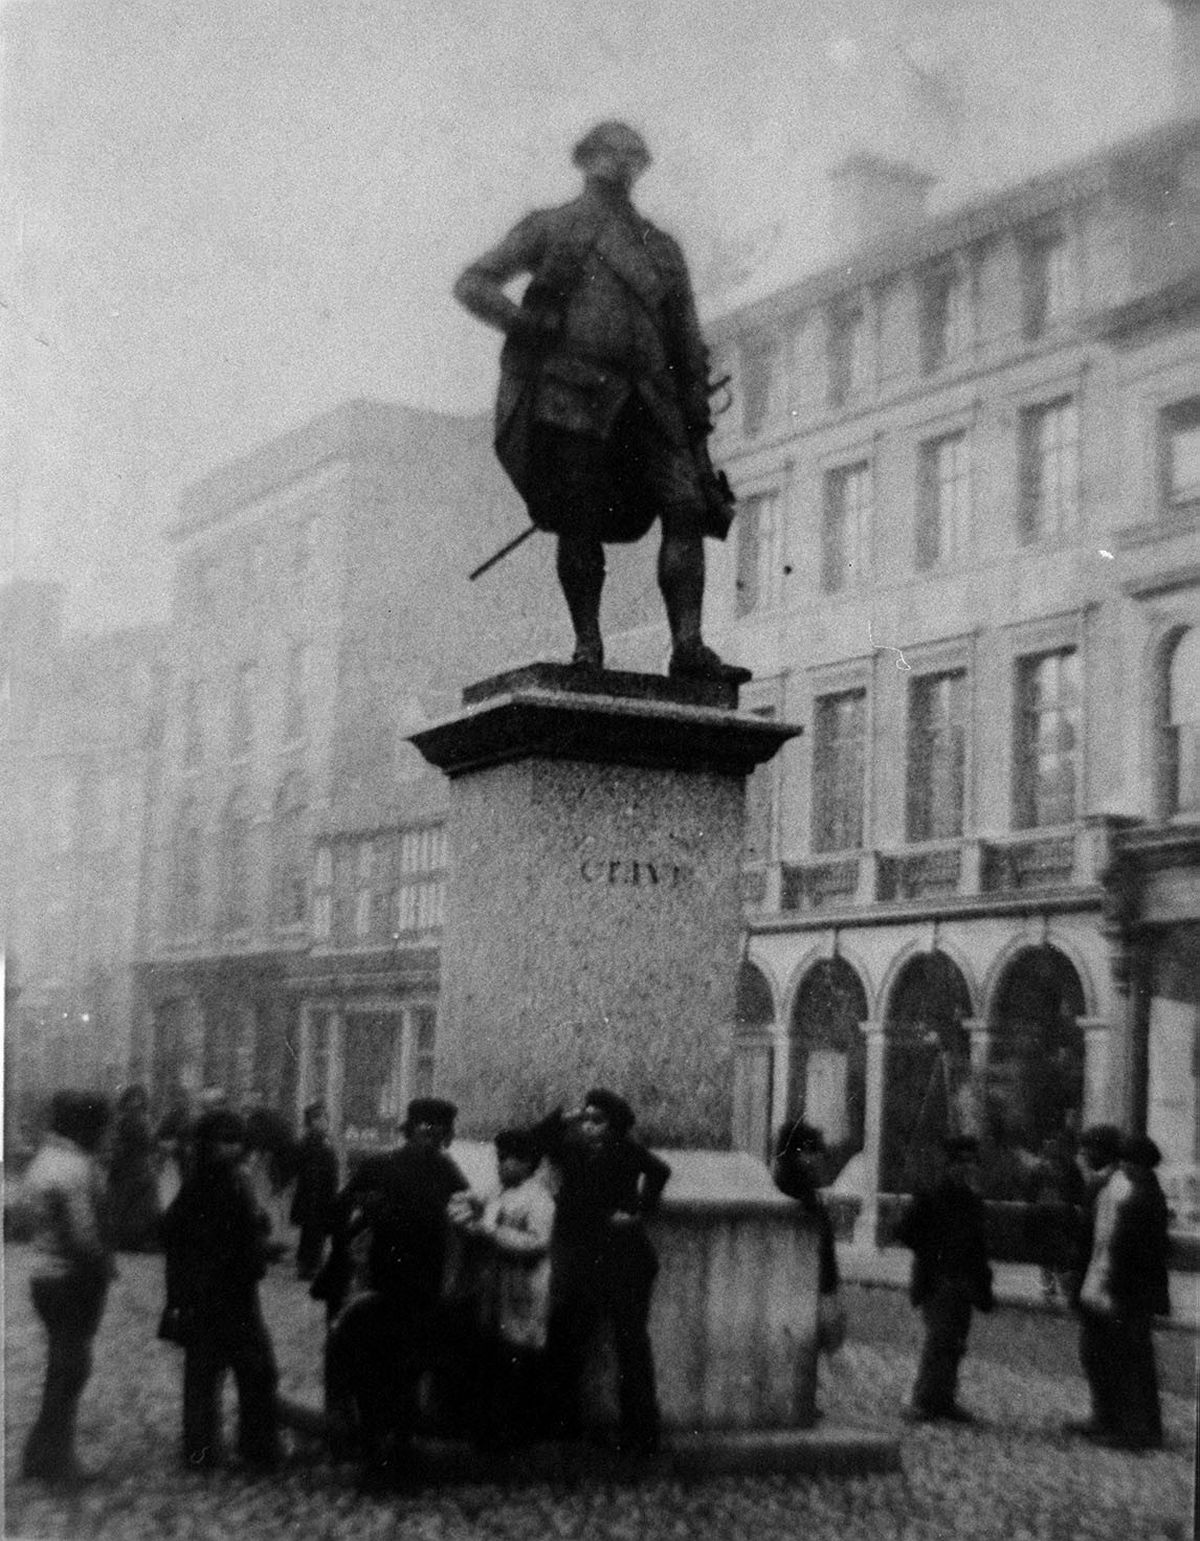 The statue was unveiled on January 18, 1860, and this picture from the collection of Shrewsbury historian David Trumper is thought to be from about that time.